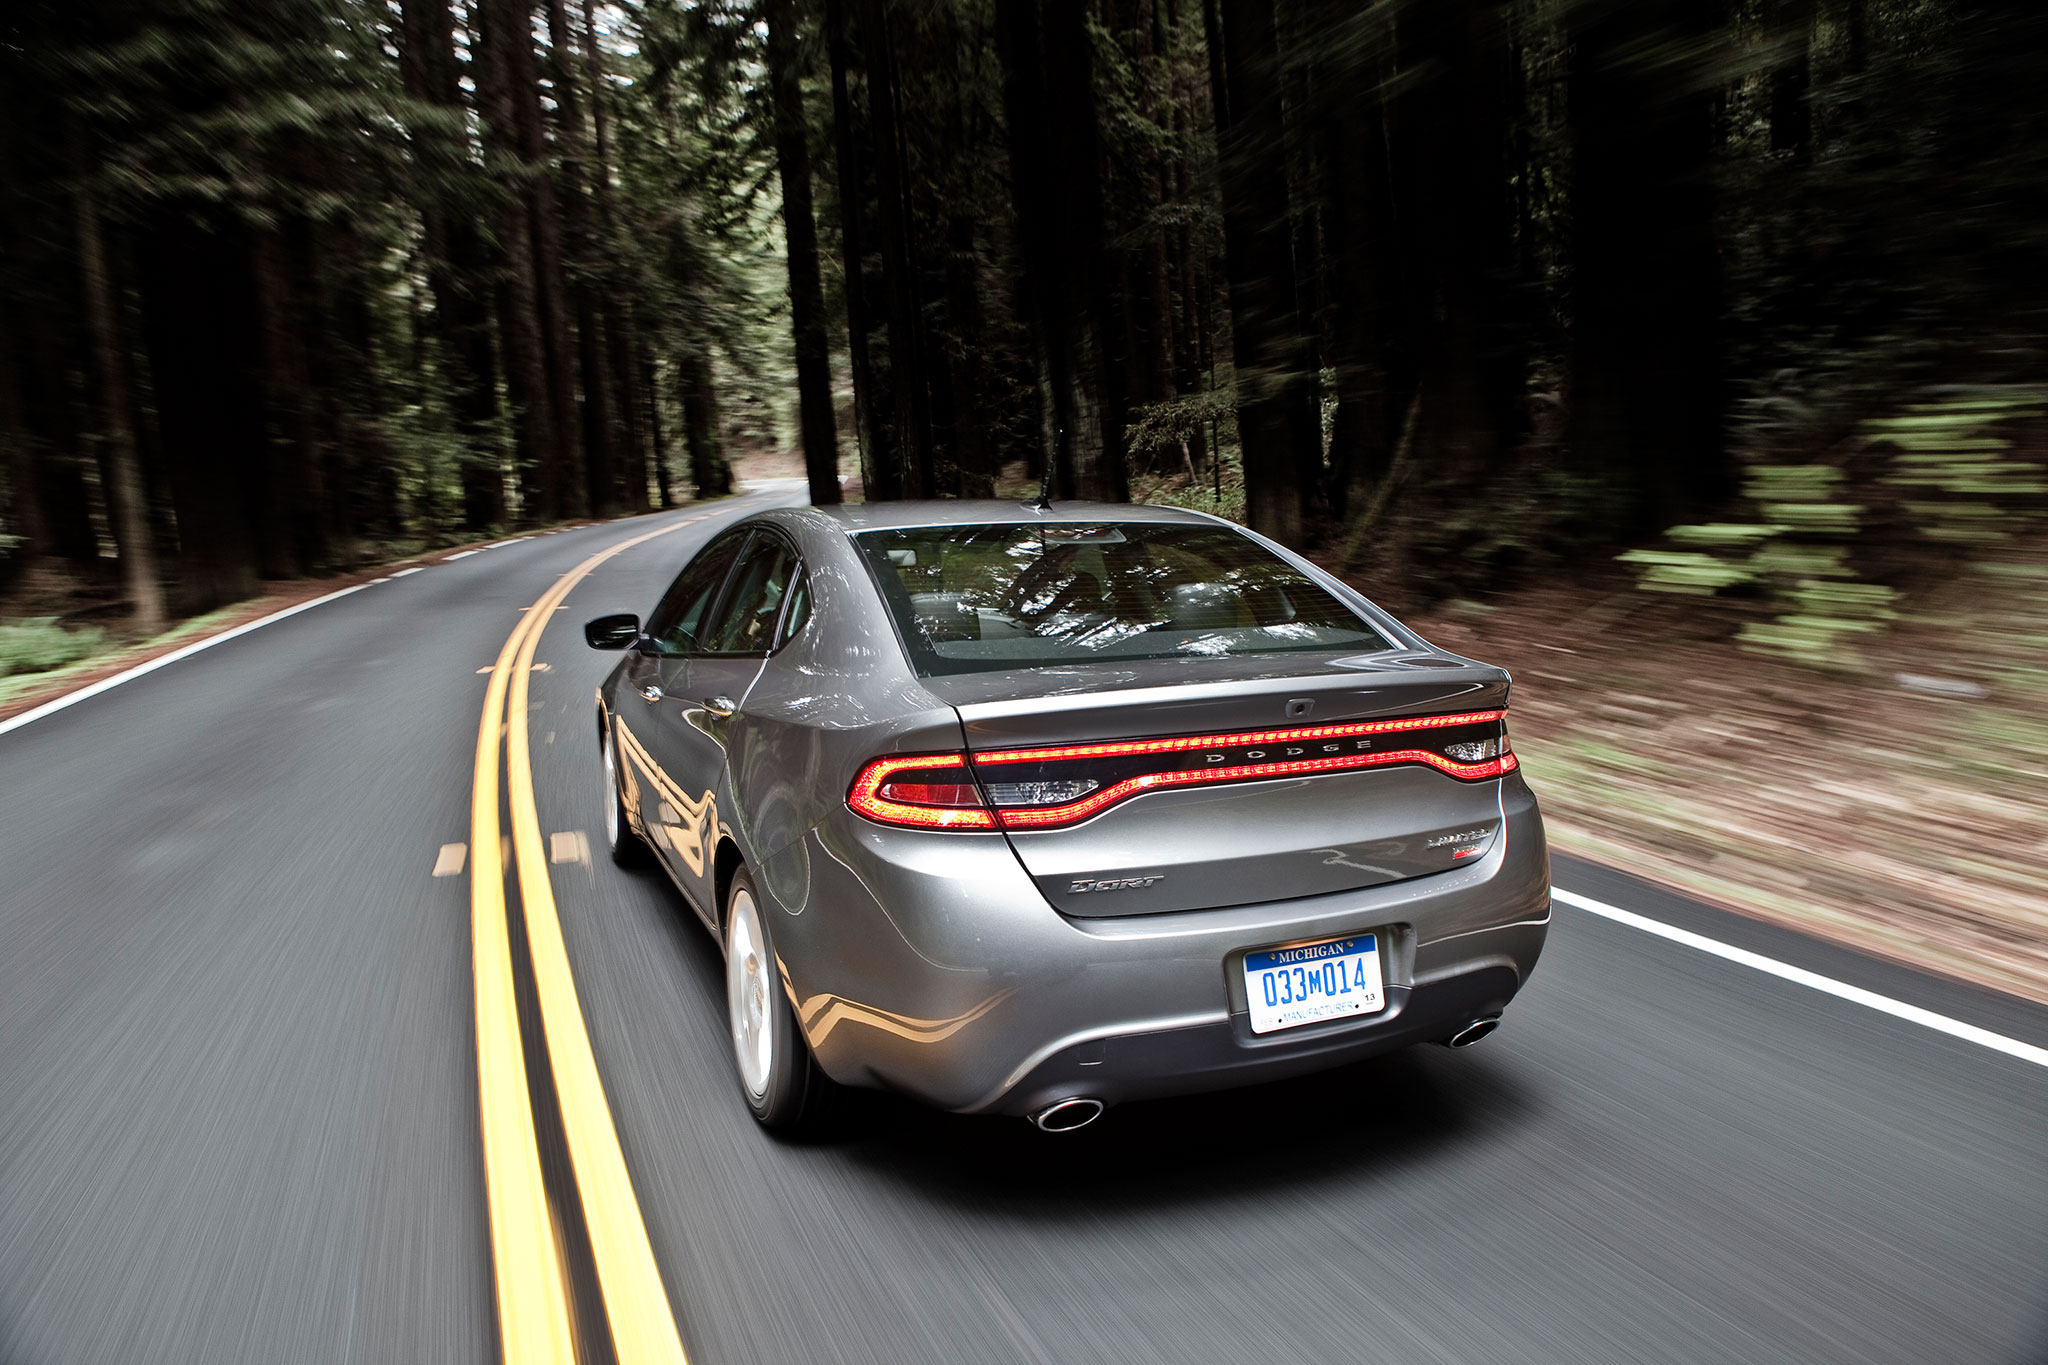 2014 Dodge Dart Blacktop Debuts for 2014 Detroit Auto Show